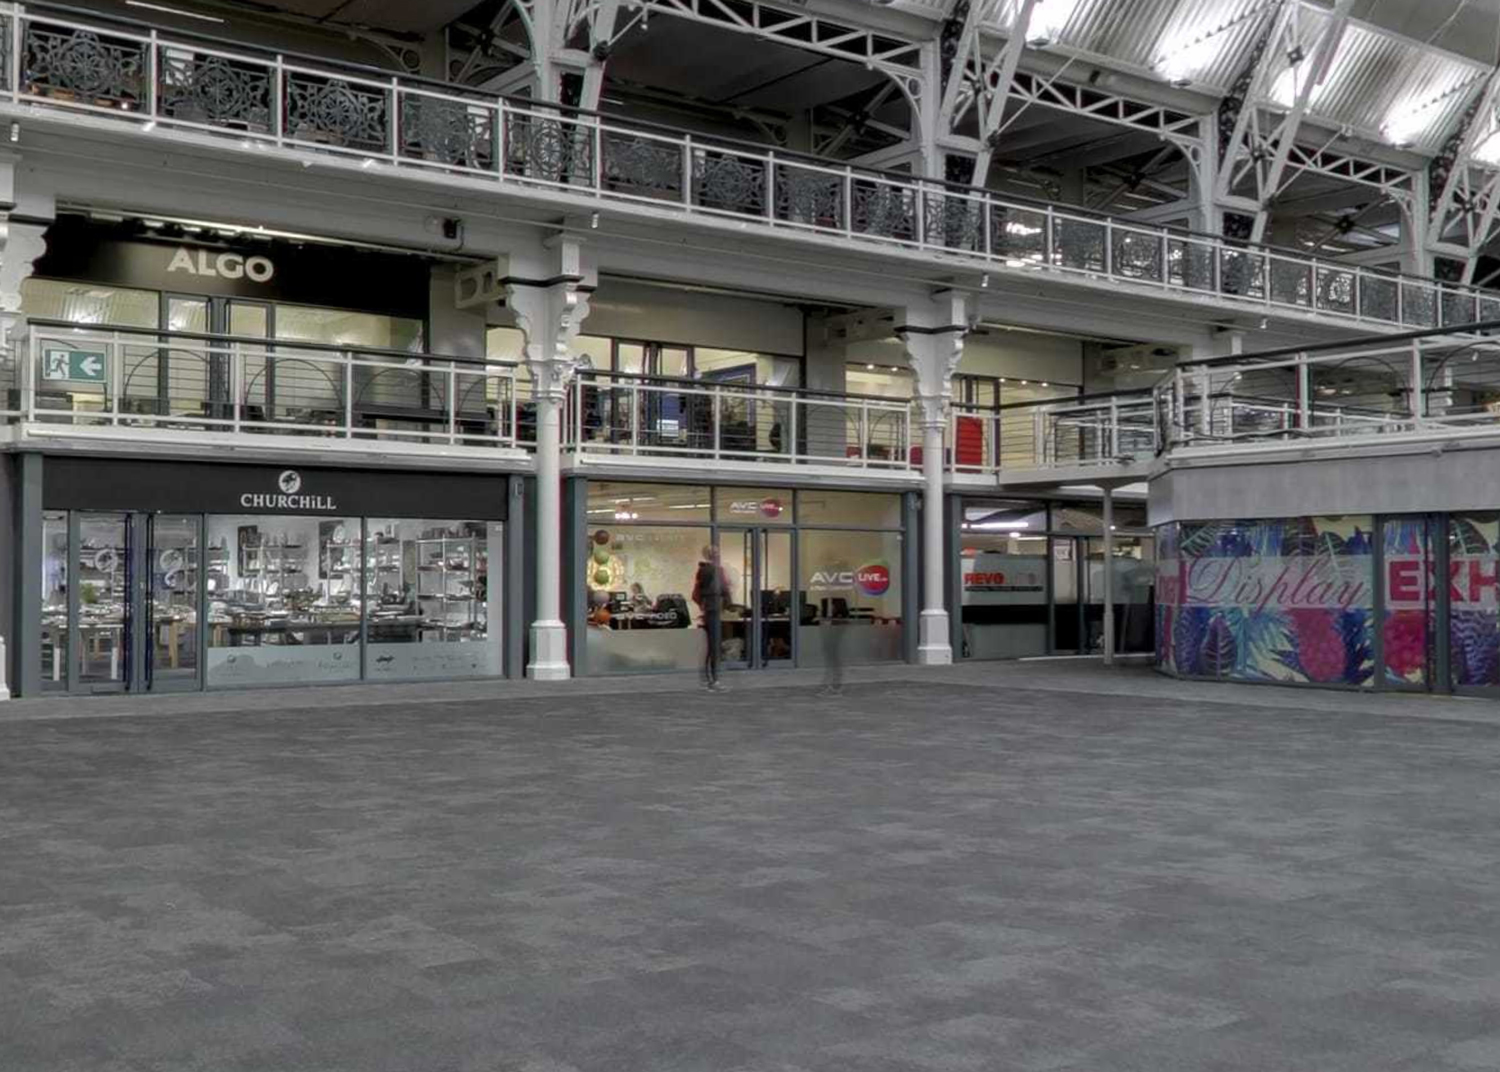 Existing screenshot of the London Showroom in the Business Design Centre